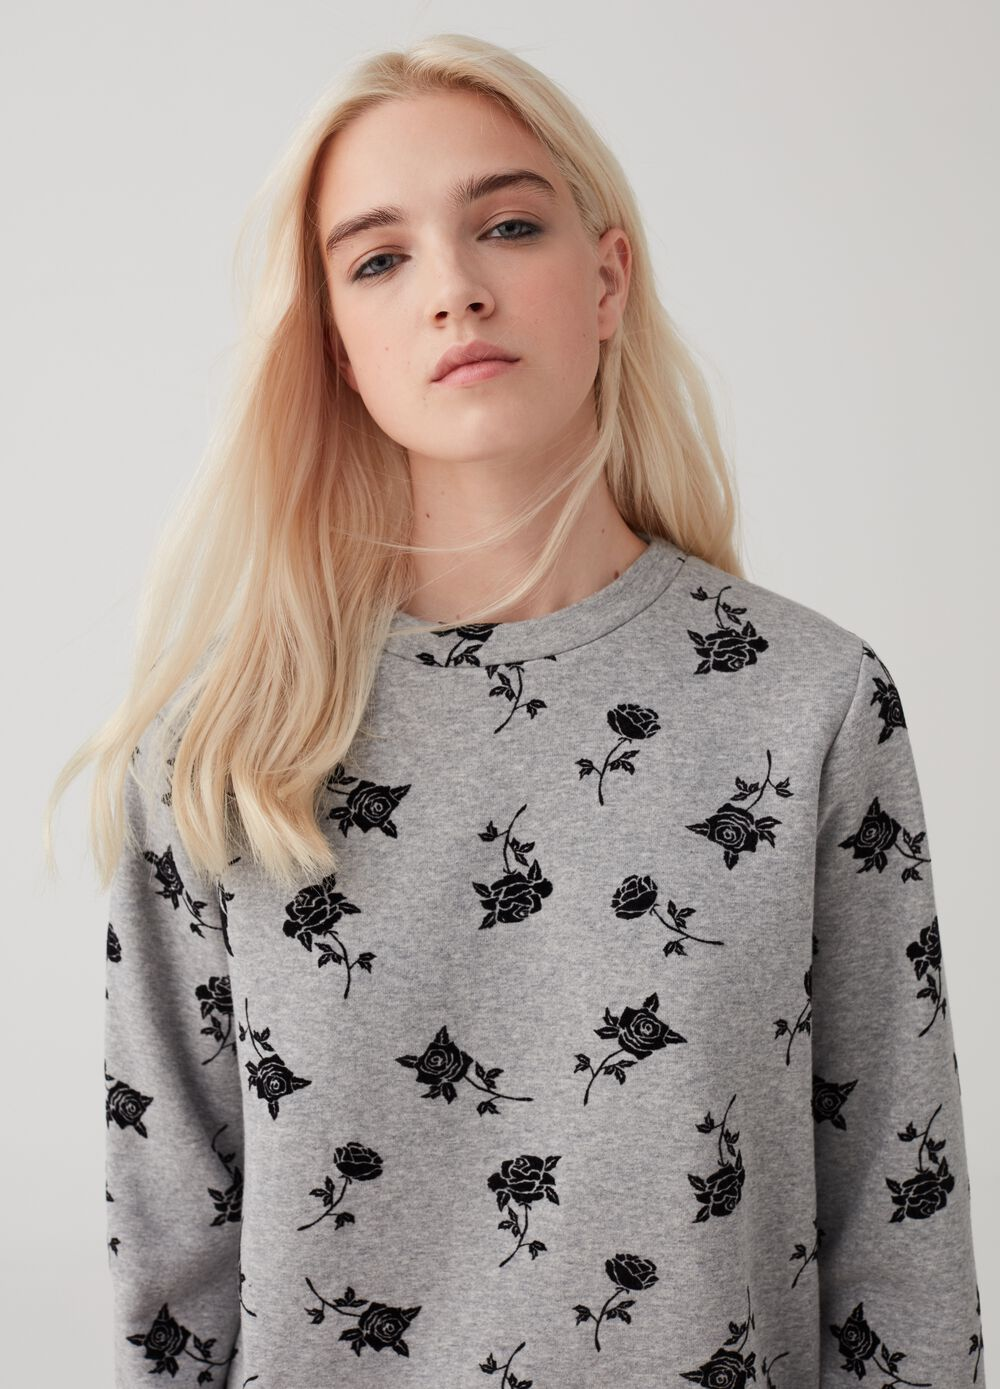 Sweatshirt with round neck and floral pattern